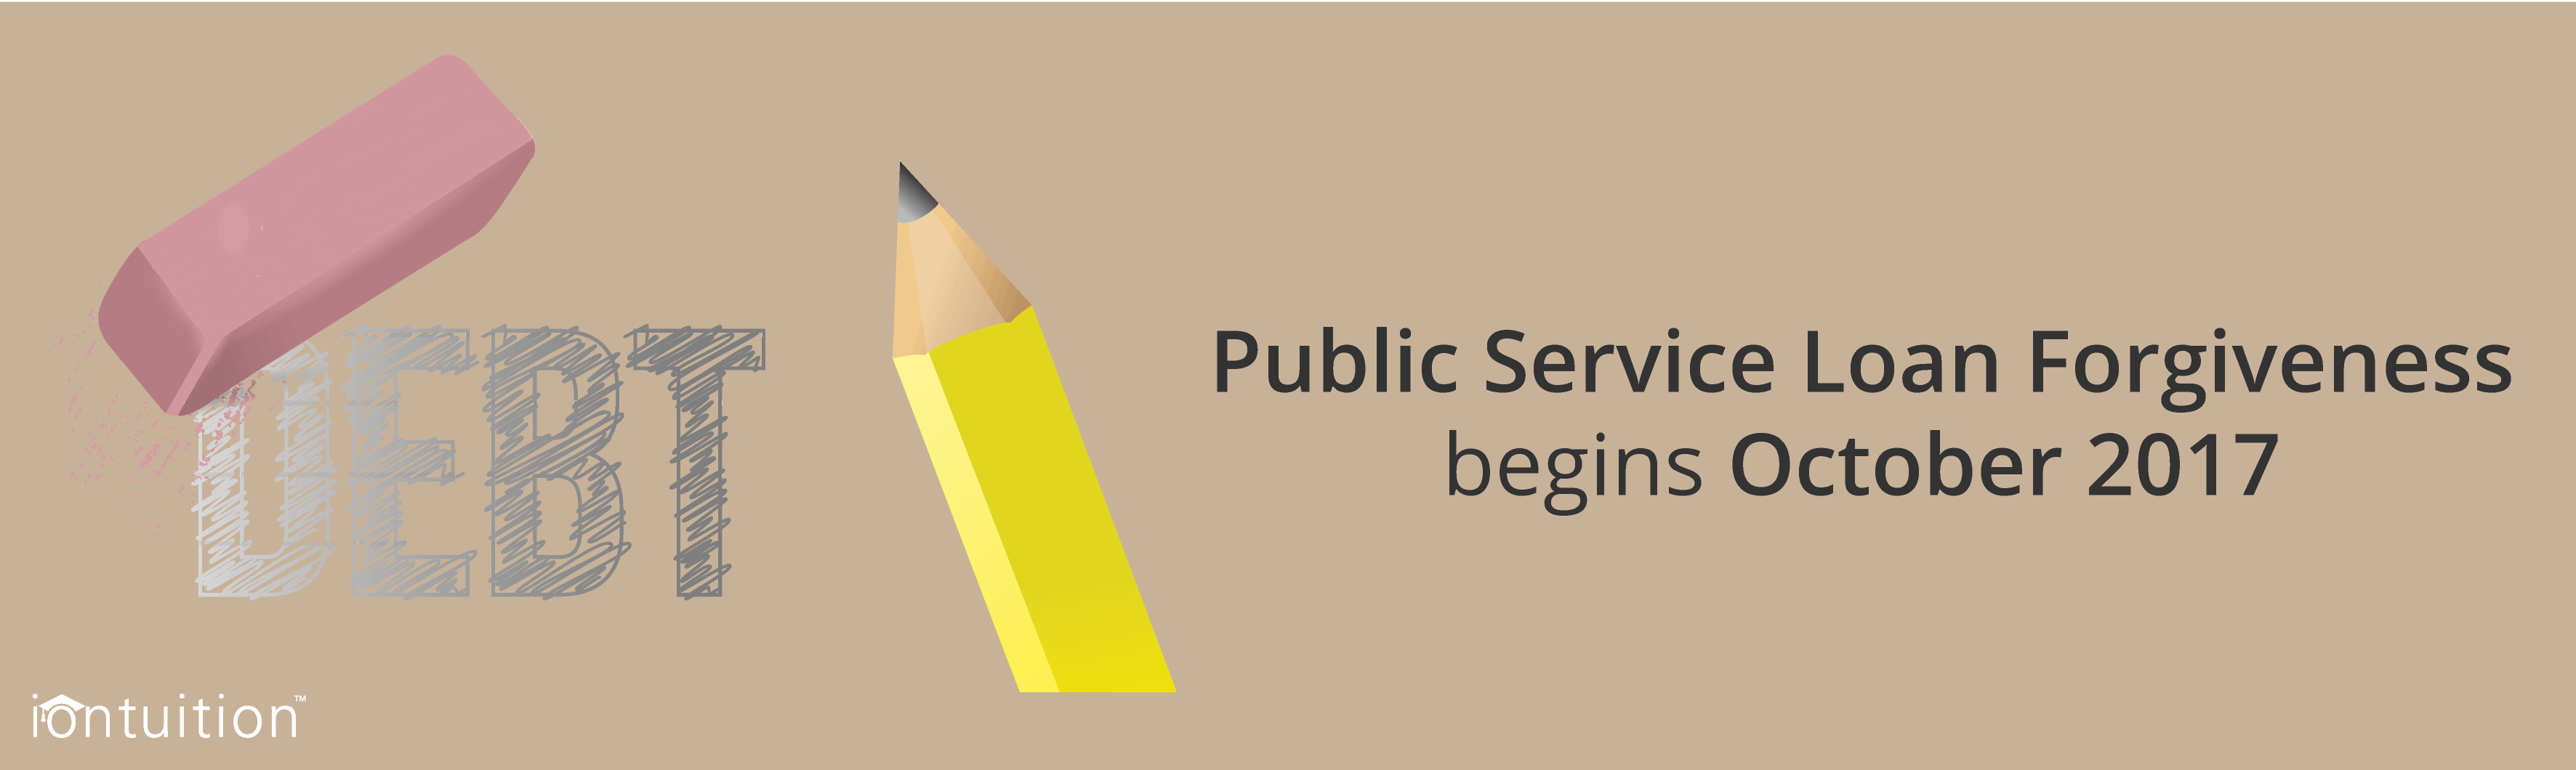 Will You and Your Employer Qualify For Public Service Loan Forgiveness?